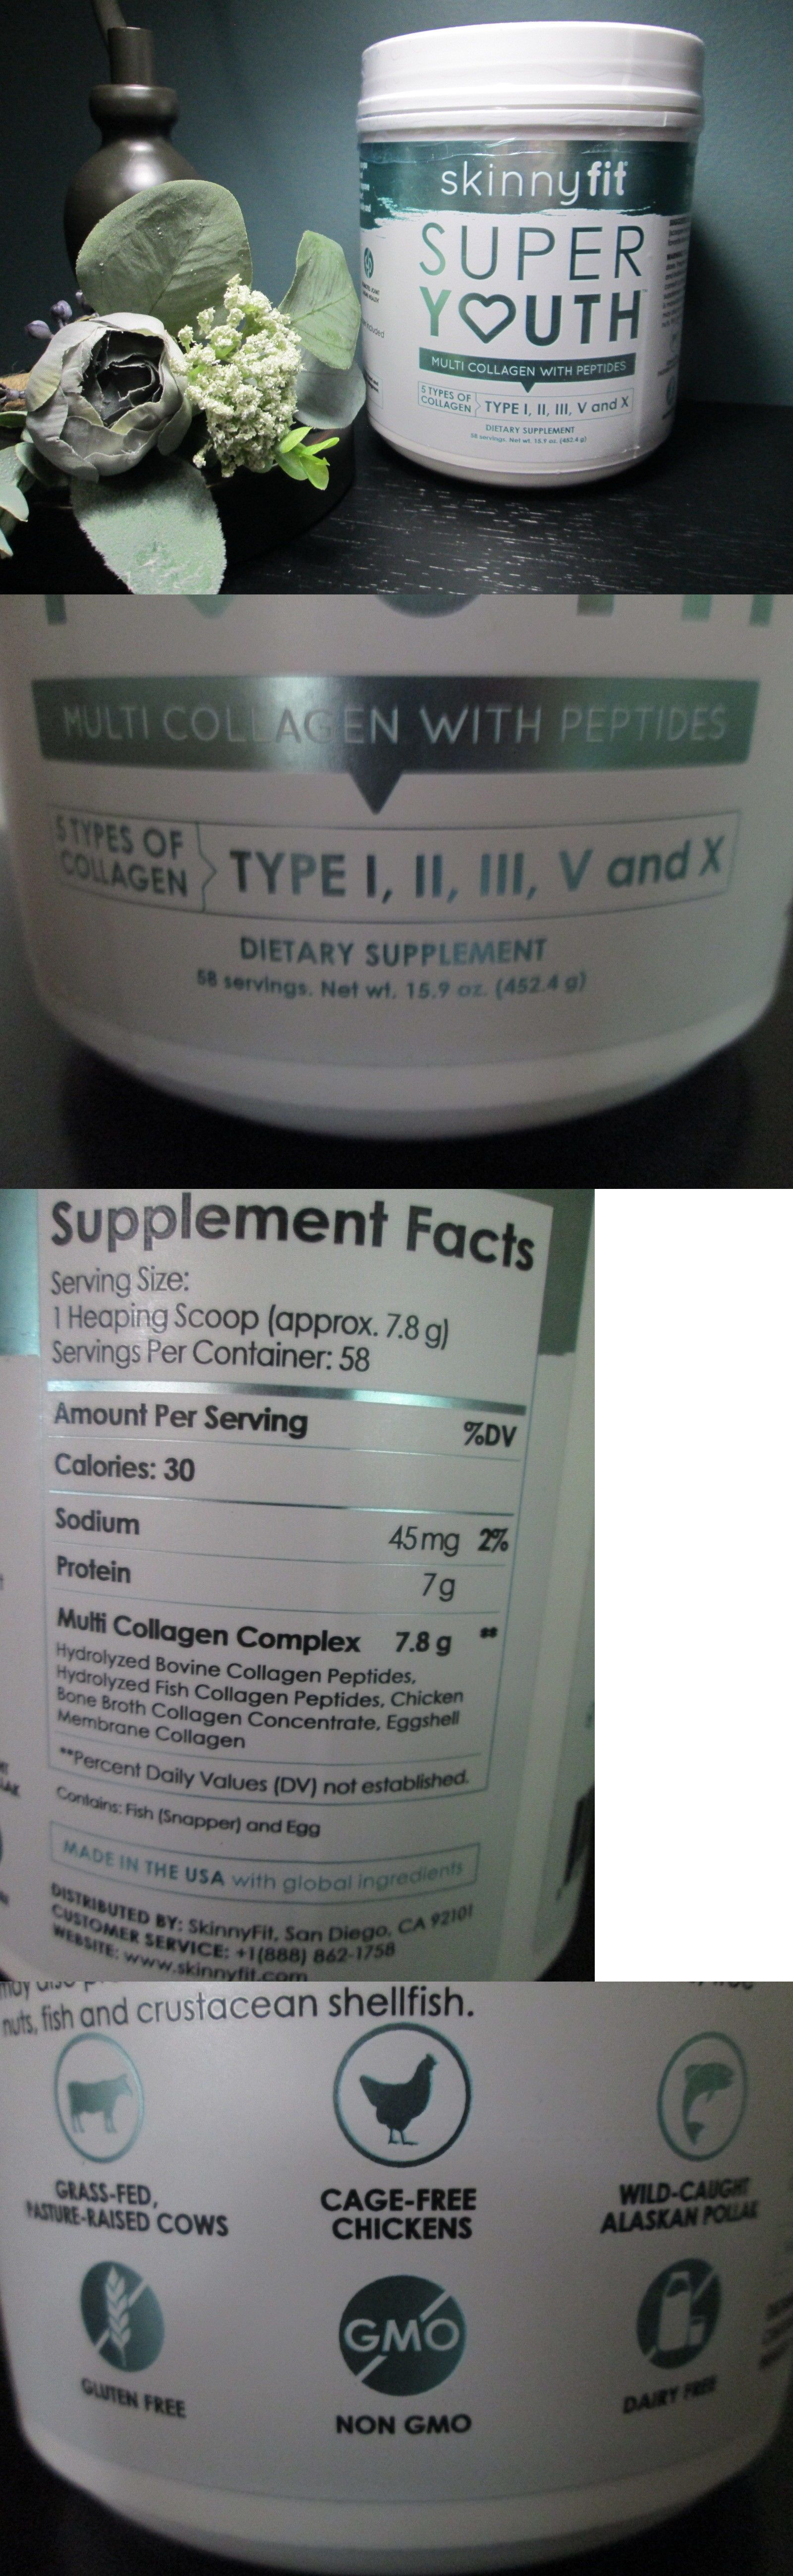 Dietary Supplements 180960 Skinnyfit Super Youth 15 9 Oz Multi